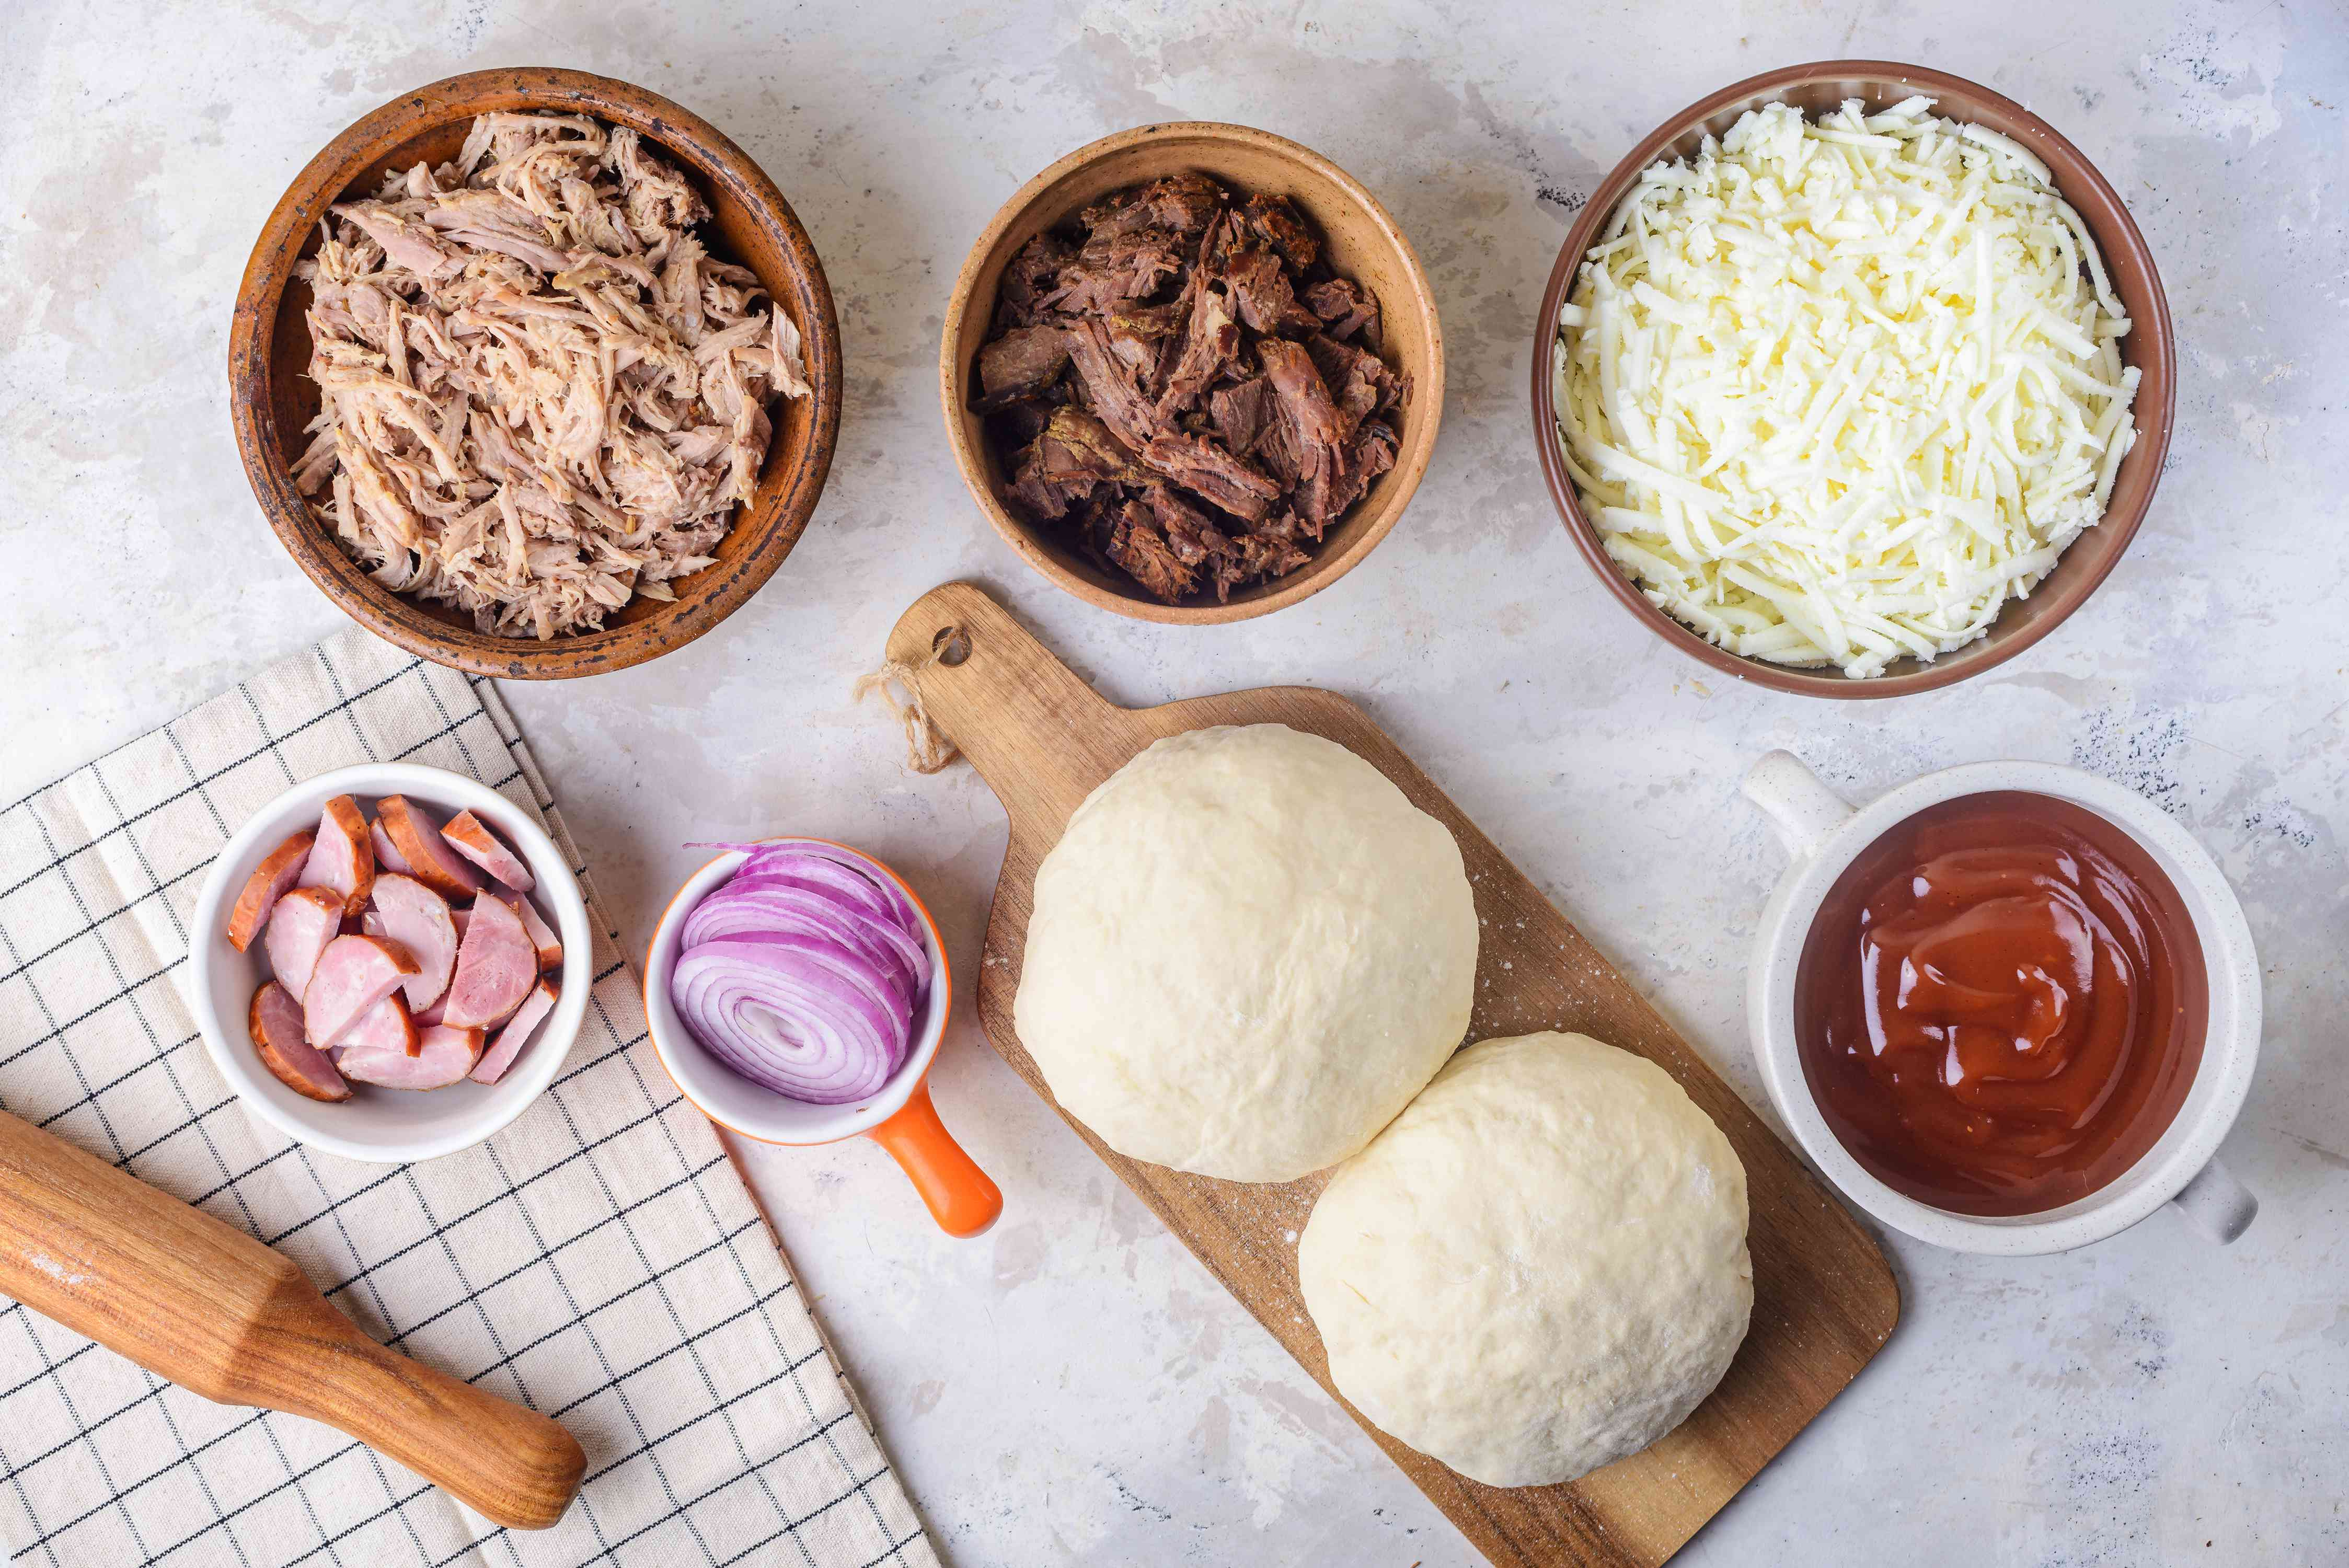 Ingredients for double crust barbecue pizza